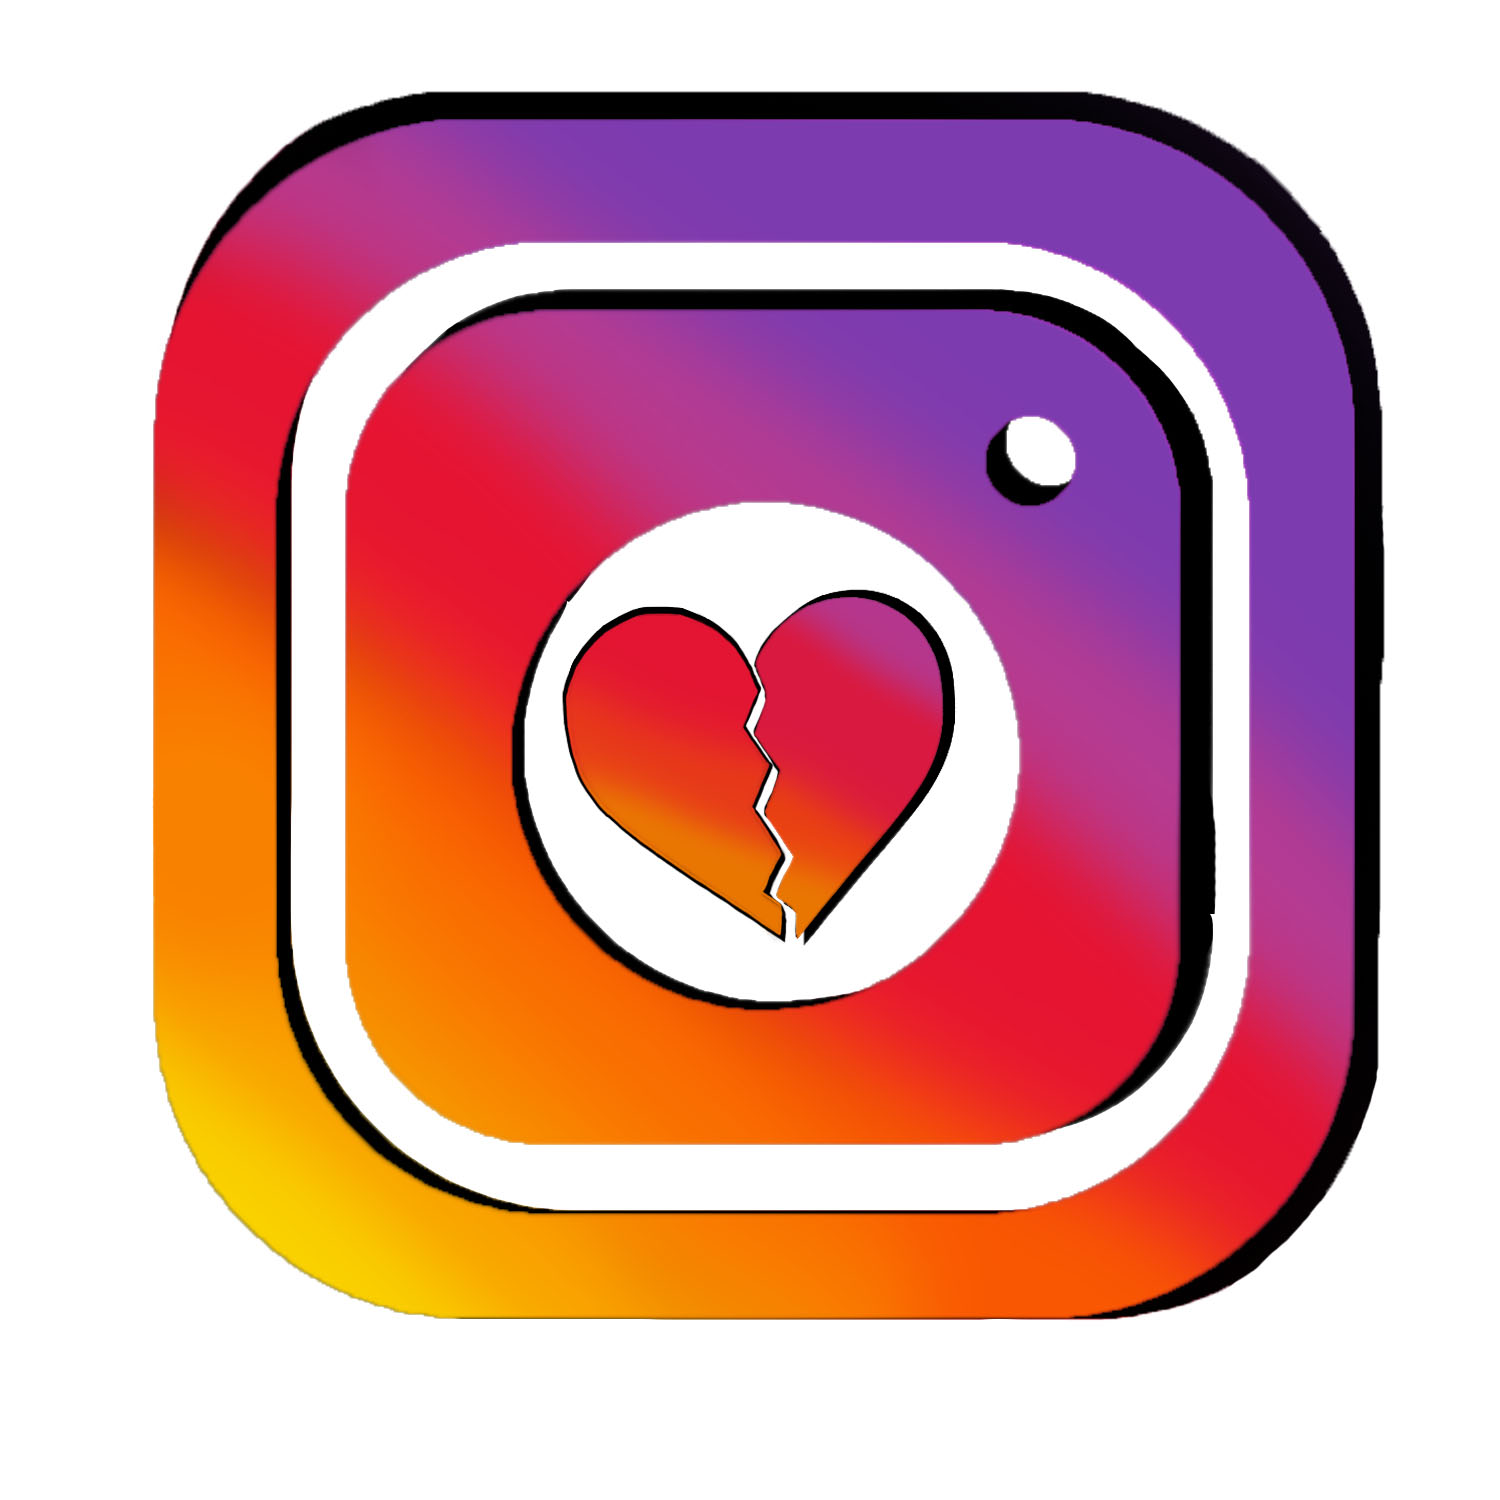 Instagram has already deactivated some accounts' public likes, including celebrities